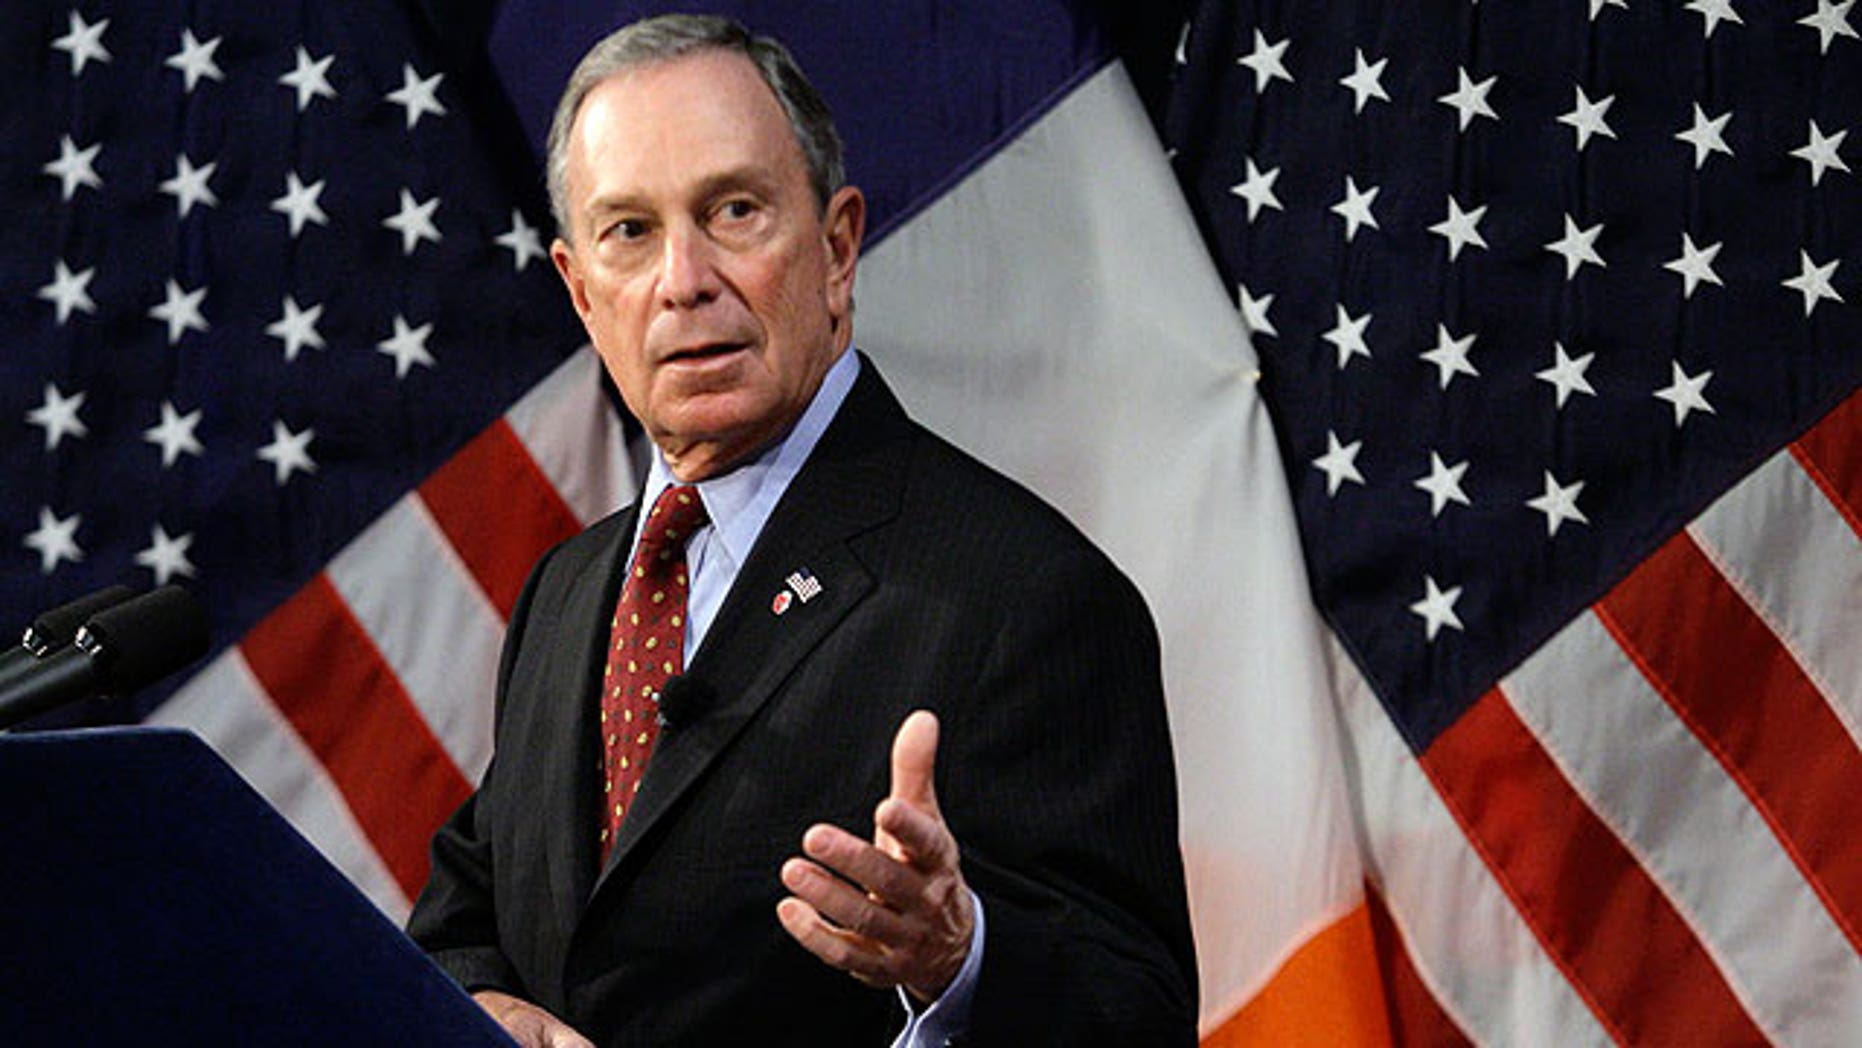 New York City Mayor Michael Bloomberg addresses the media during a news conference at City Hall in New York, Thursday, Jan 28, 2010. (AP)